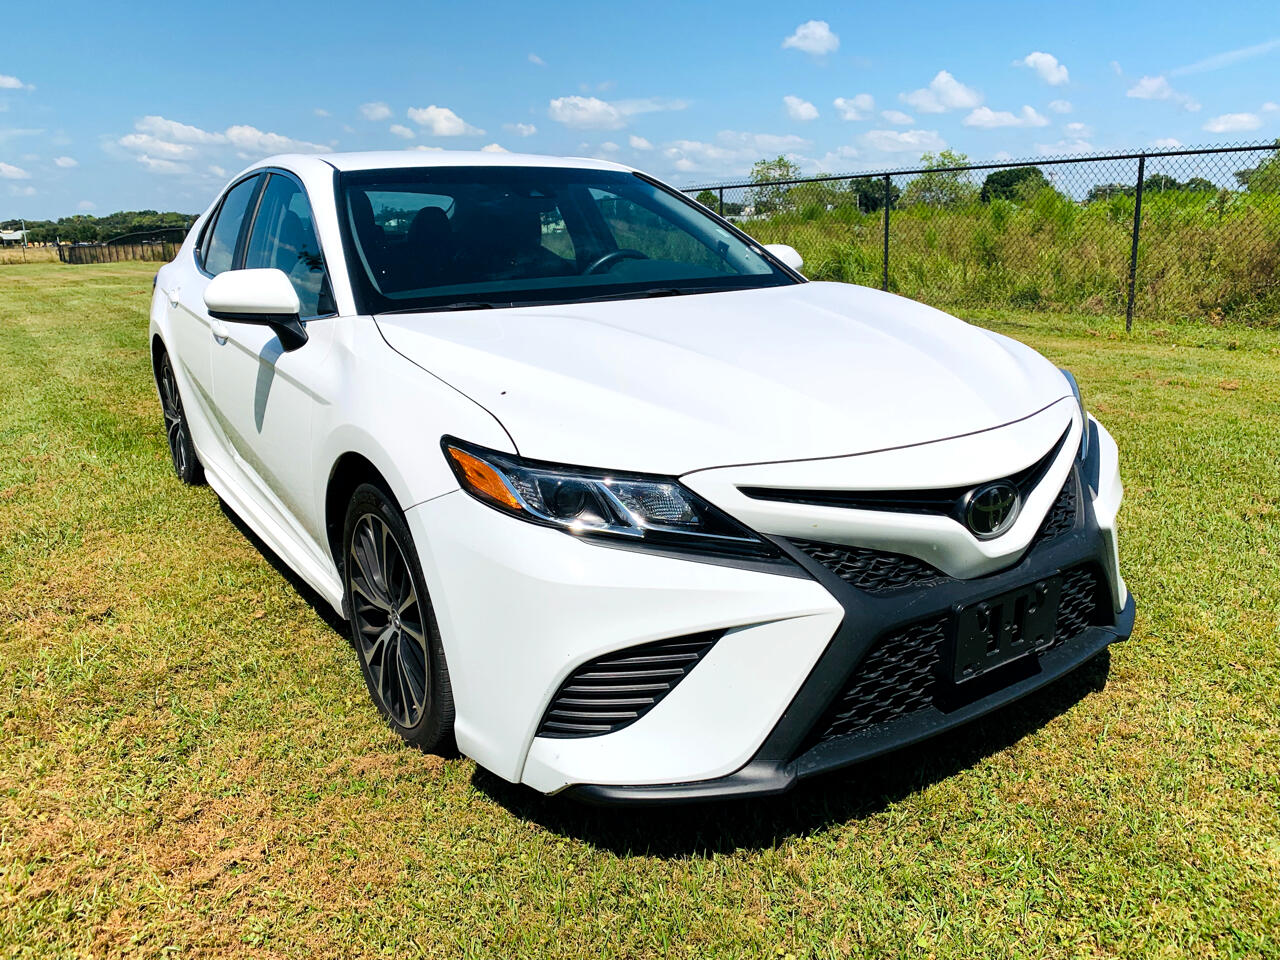 Toyota Camry 2018 for Sale in Lakeland, FL